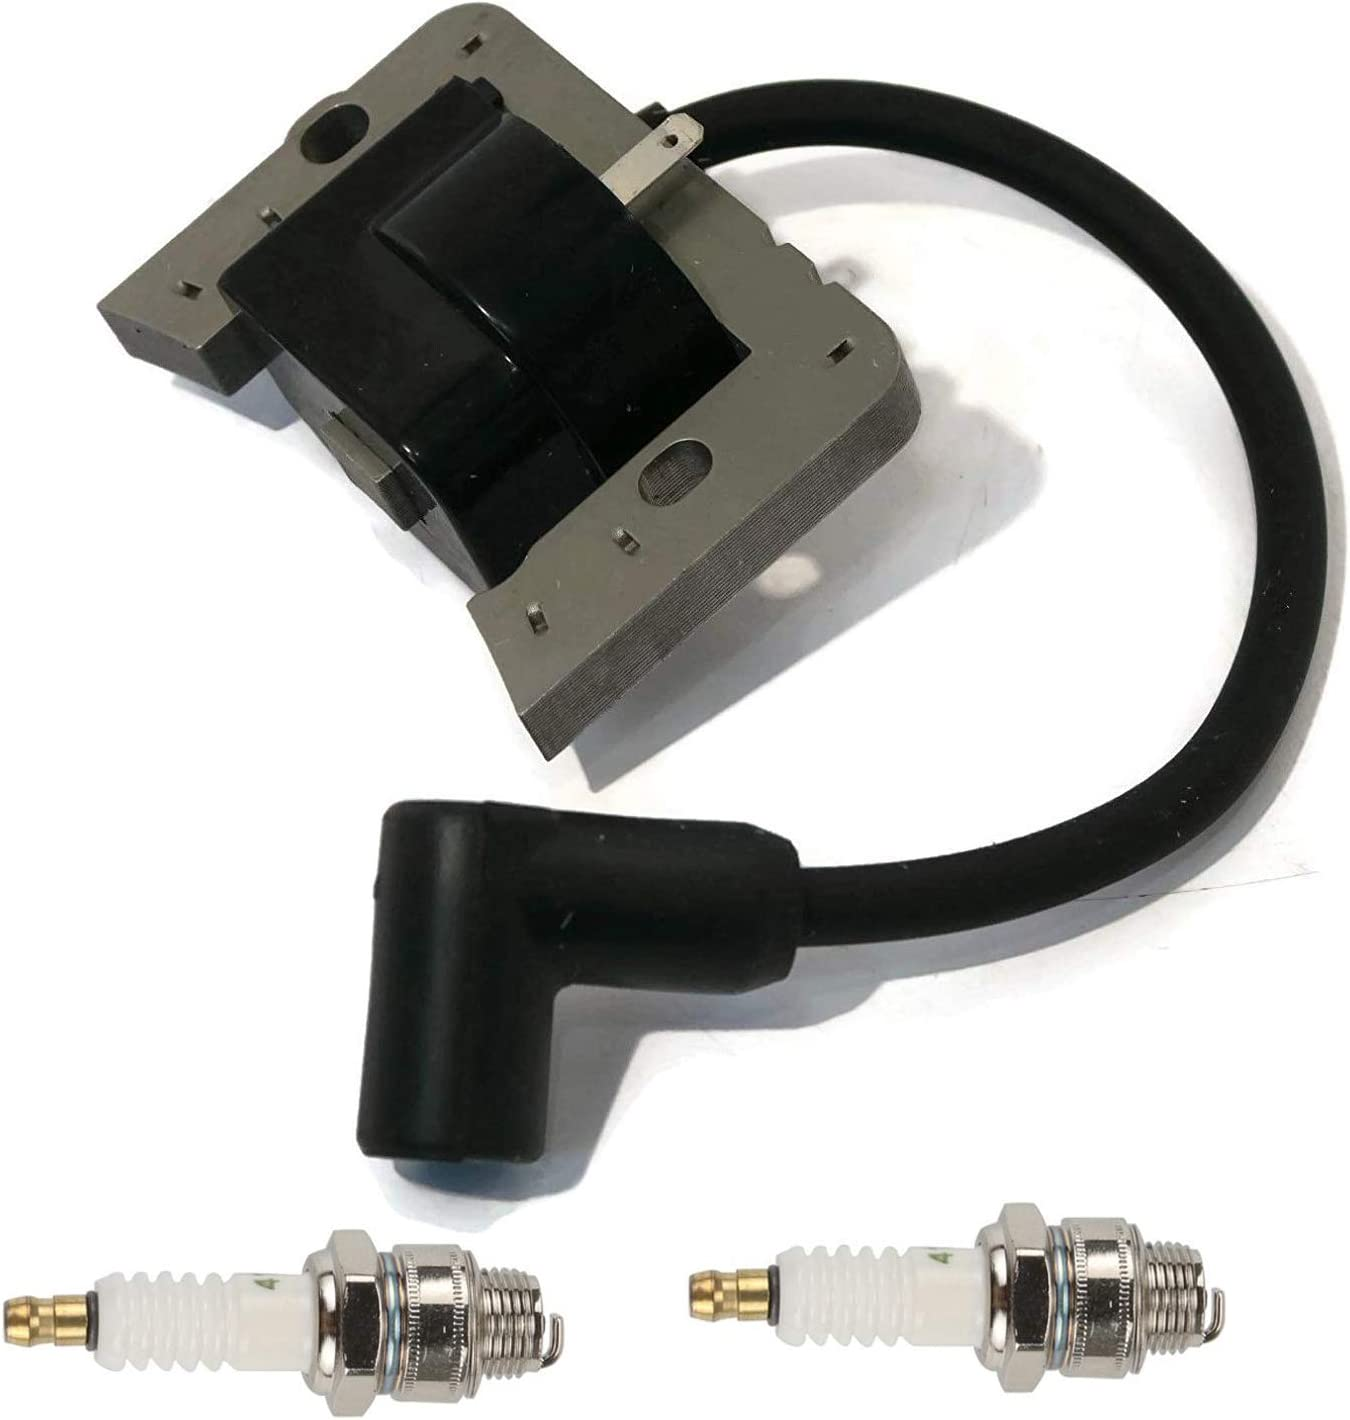 Hippotech Ignition Coil with Spark Plug for Tecumseh 36344A Tecumseh 36344A